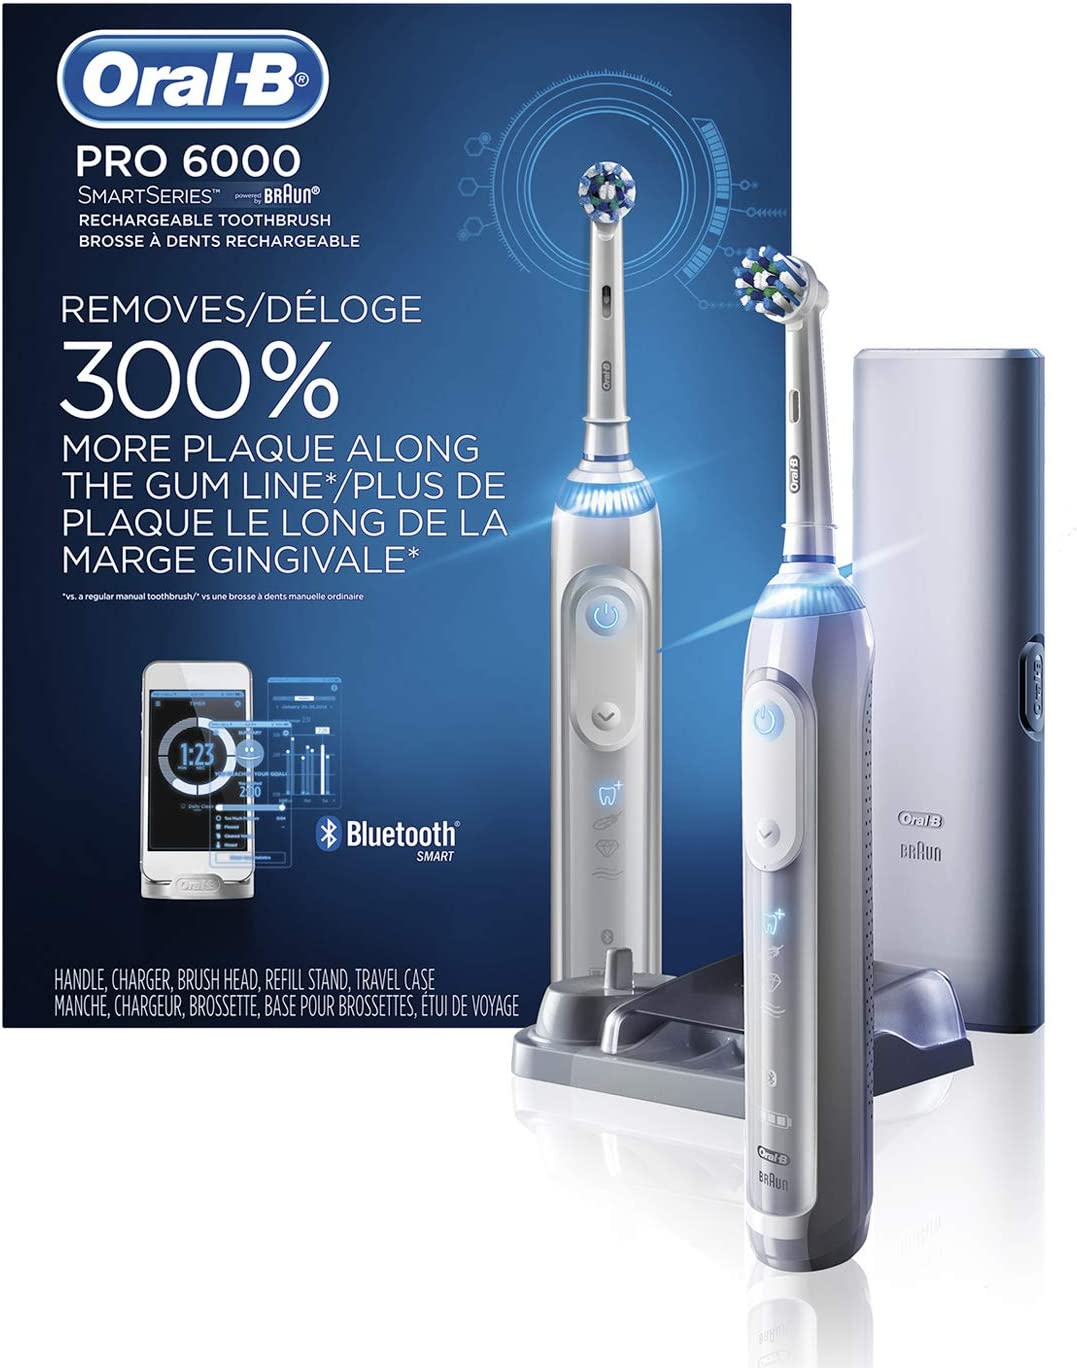 Oral-B Pro 6000 Smart Series Power Rechargeable Electric Toothbrush